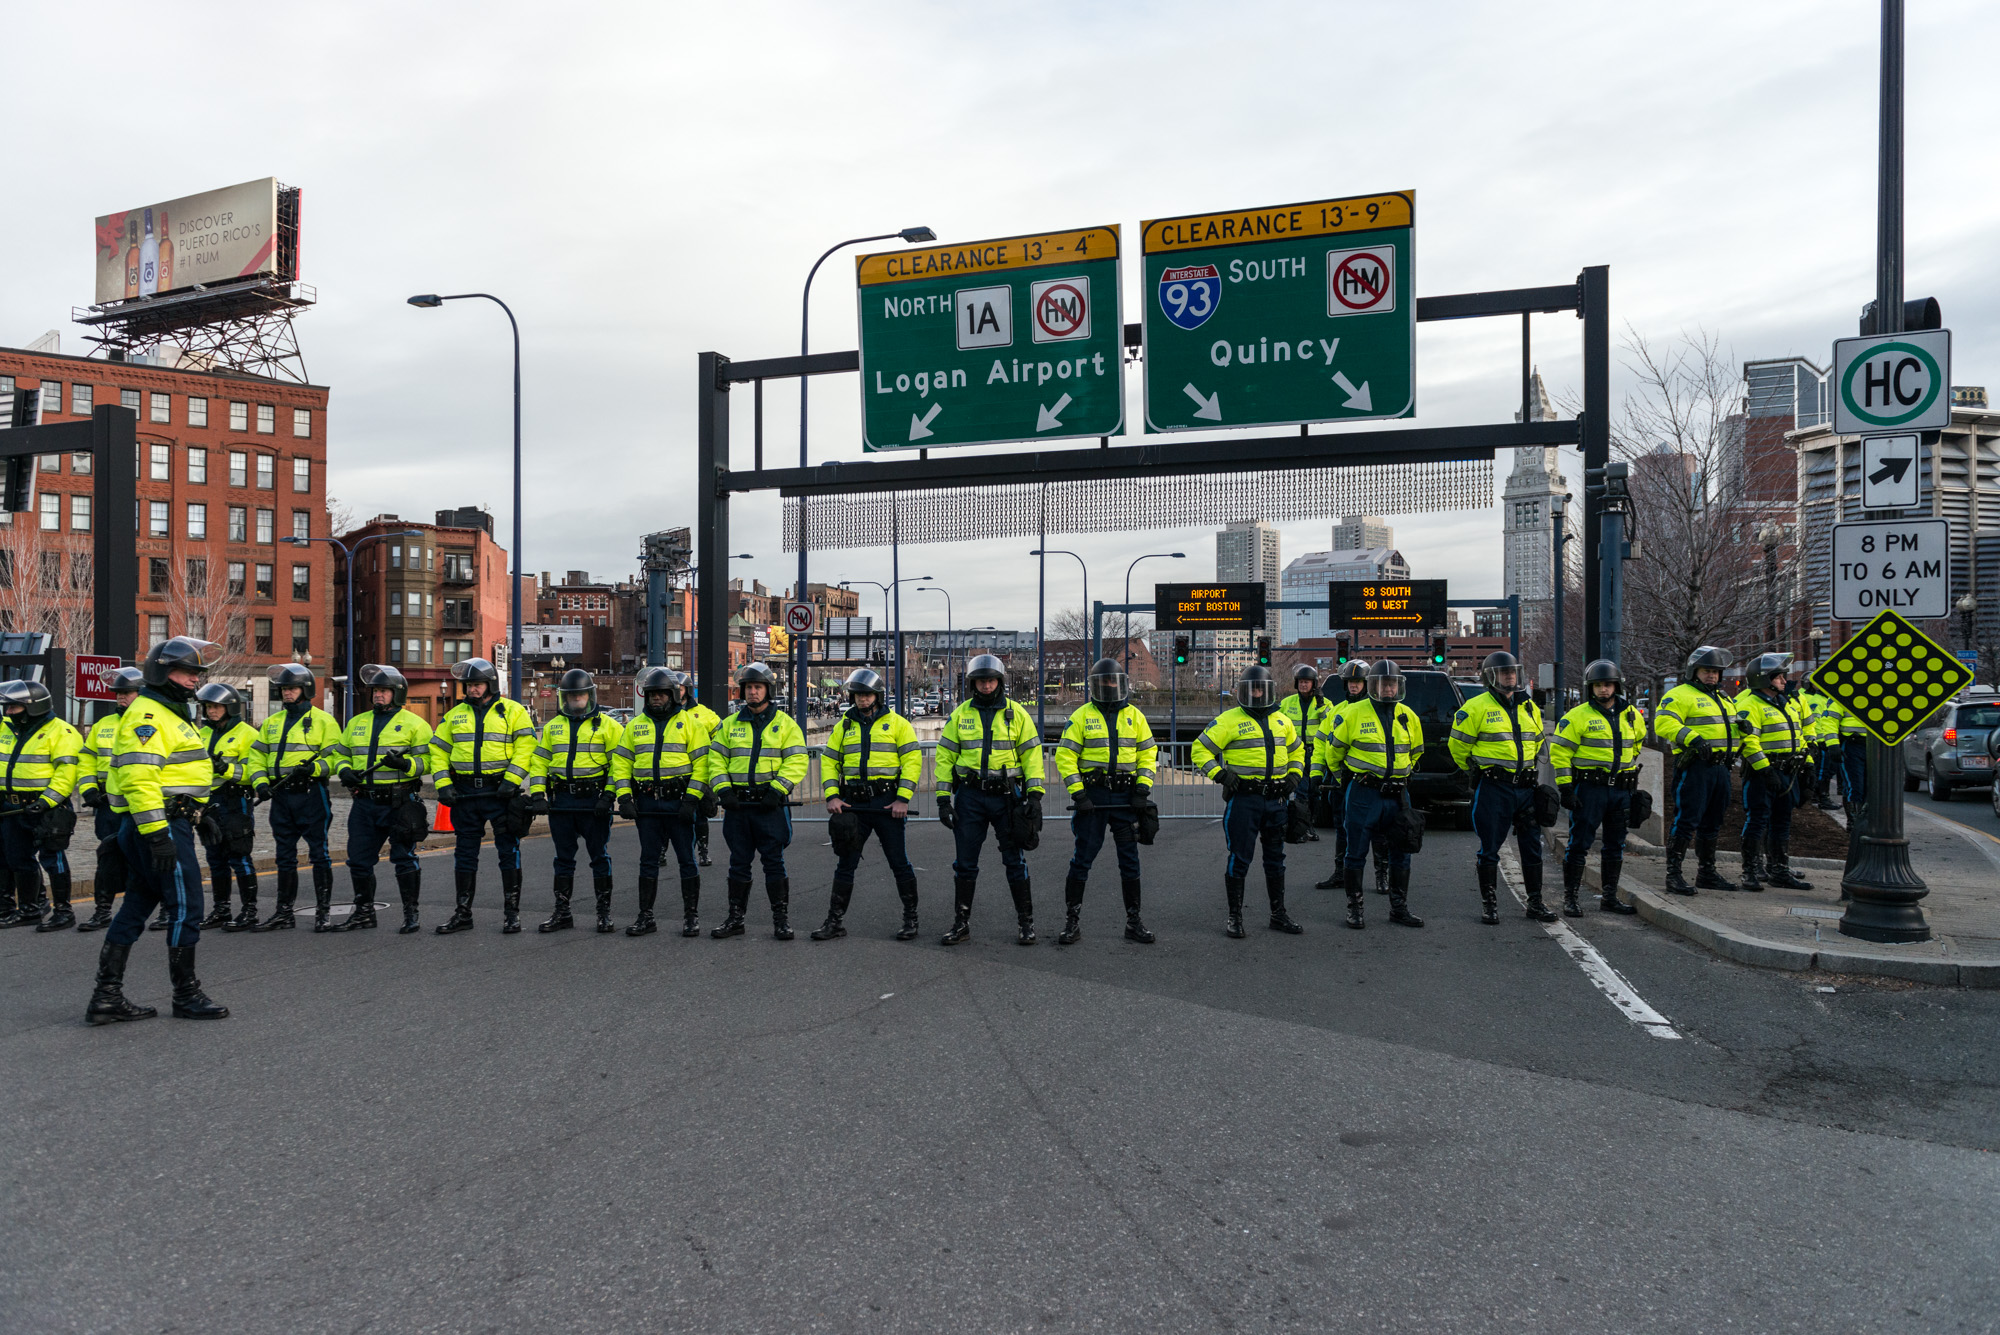 State Troopers with riot helmets blocking both directions of the I-93 connector ramp